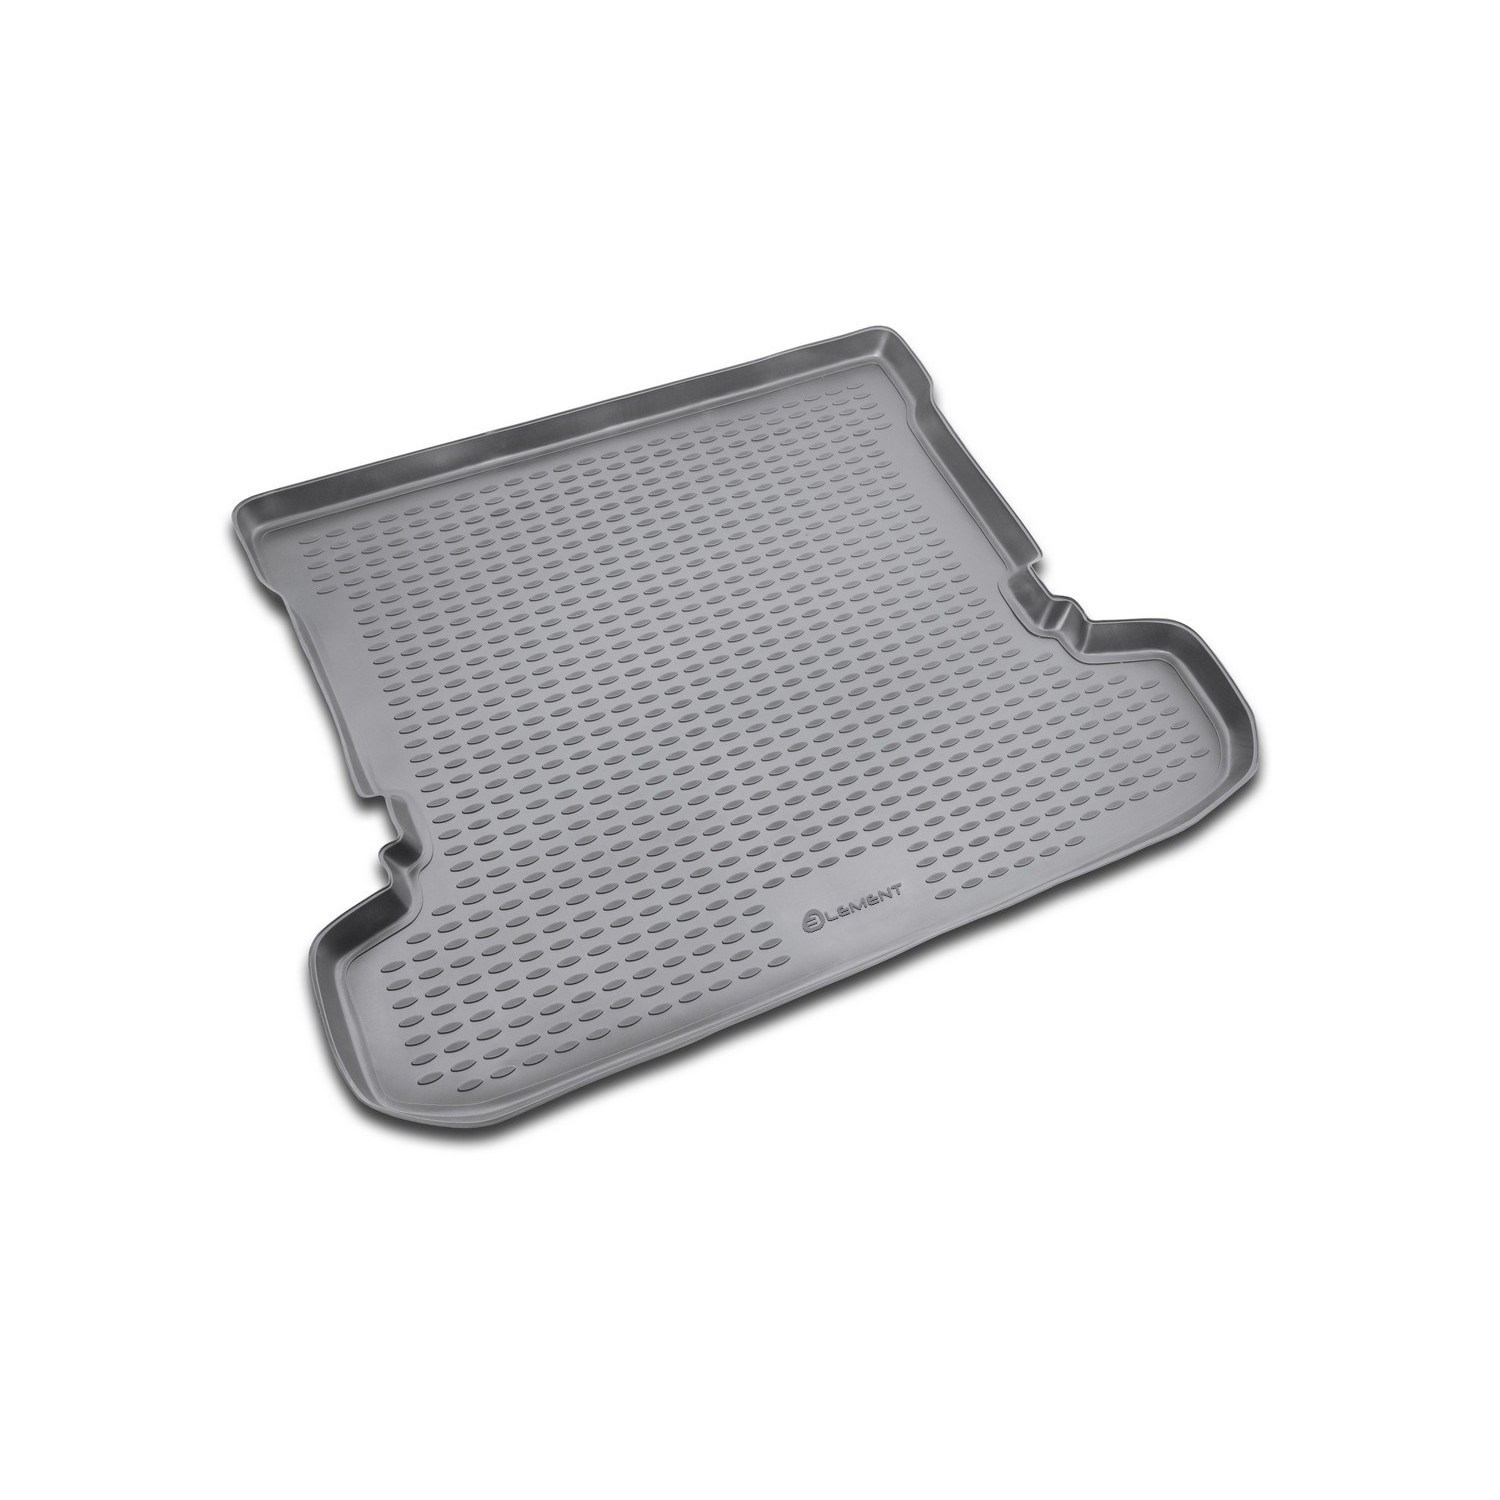 Trunk Mat For MITSUBISHI Pajero III 5D IV 5D 1999-> Implement. NLC.35.05.B13